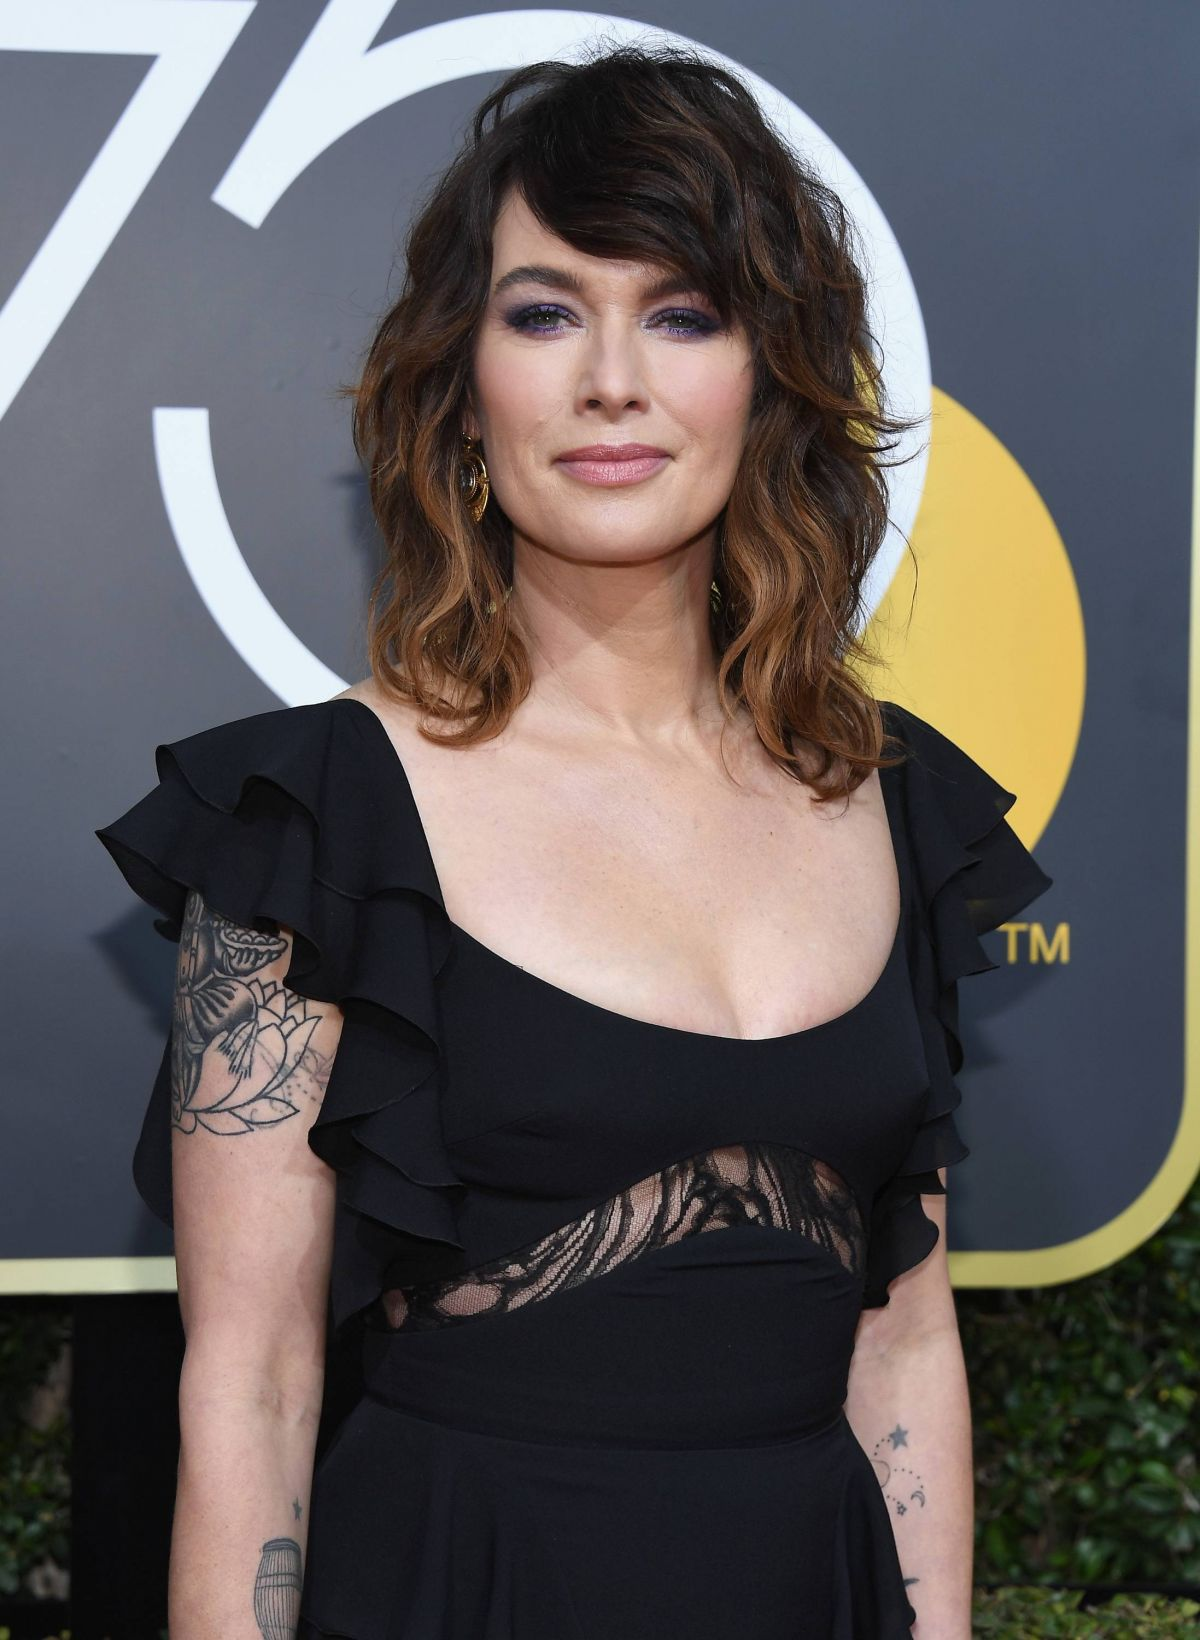 lena headey at the 75th annual golden globe awards in